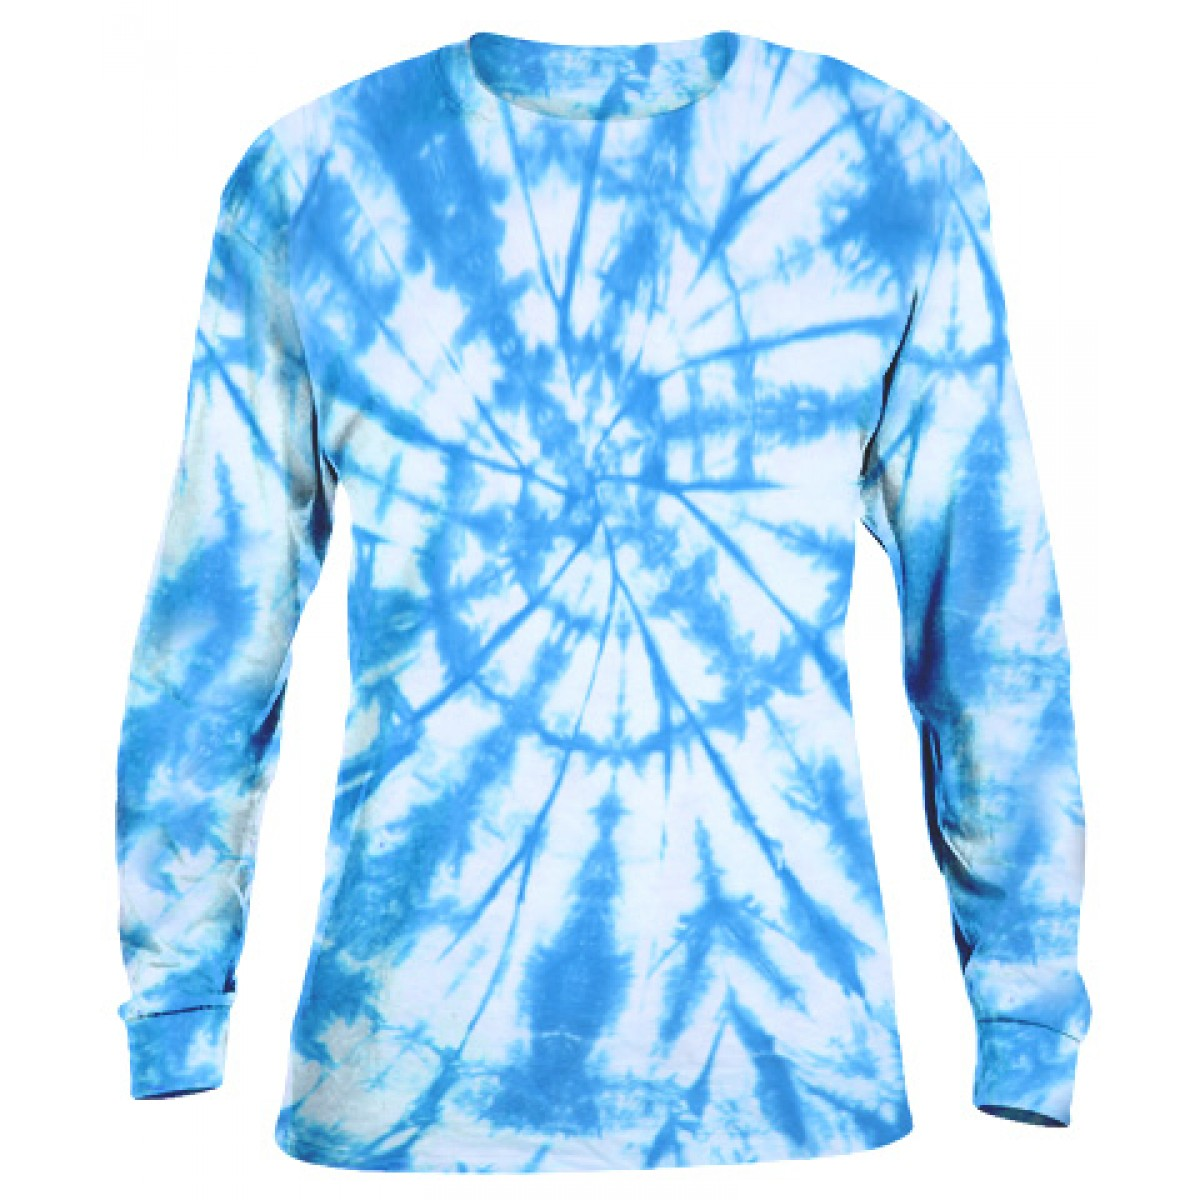 Tie-Dye Long Sleeve Shirt -Blue-YM